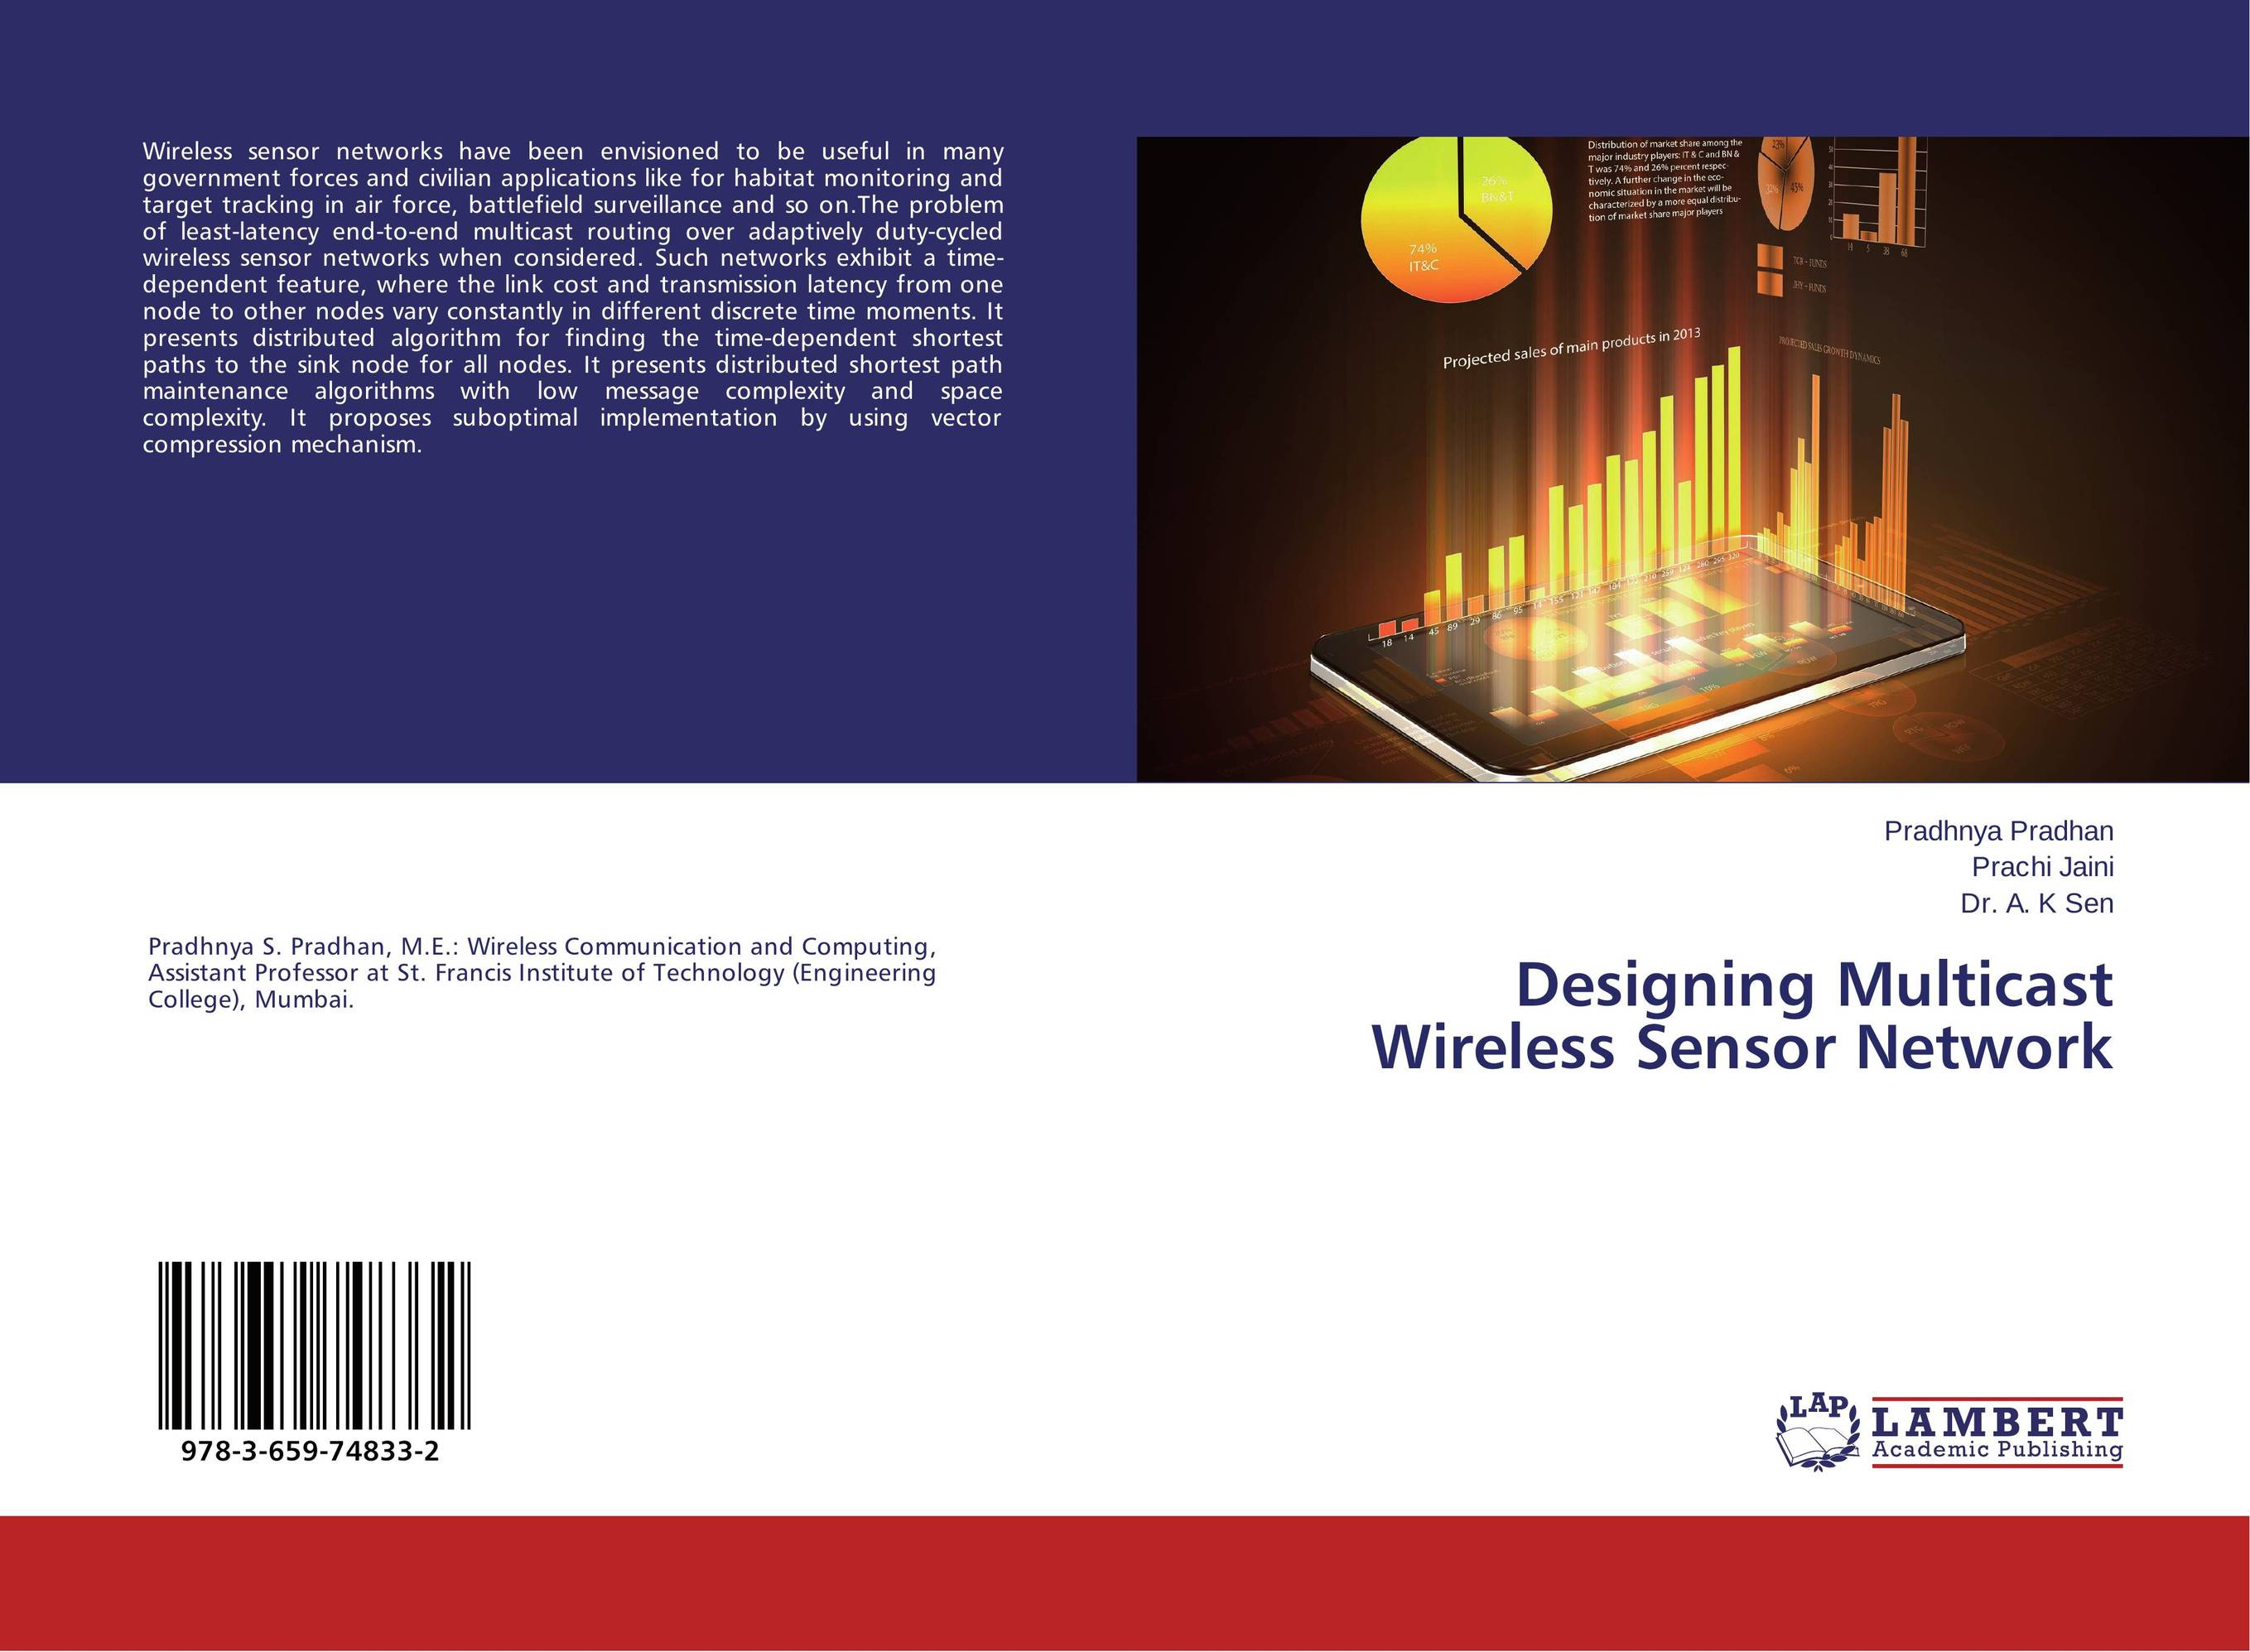 Designing Multicast Wireless Sensor Network garnitura philips shm 7110 00 26042561